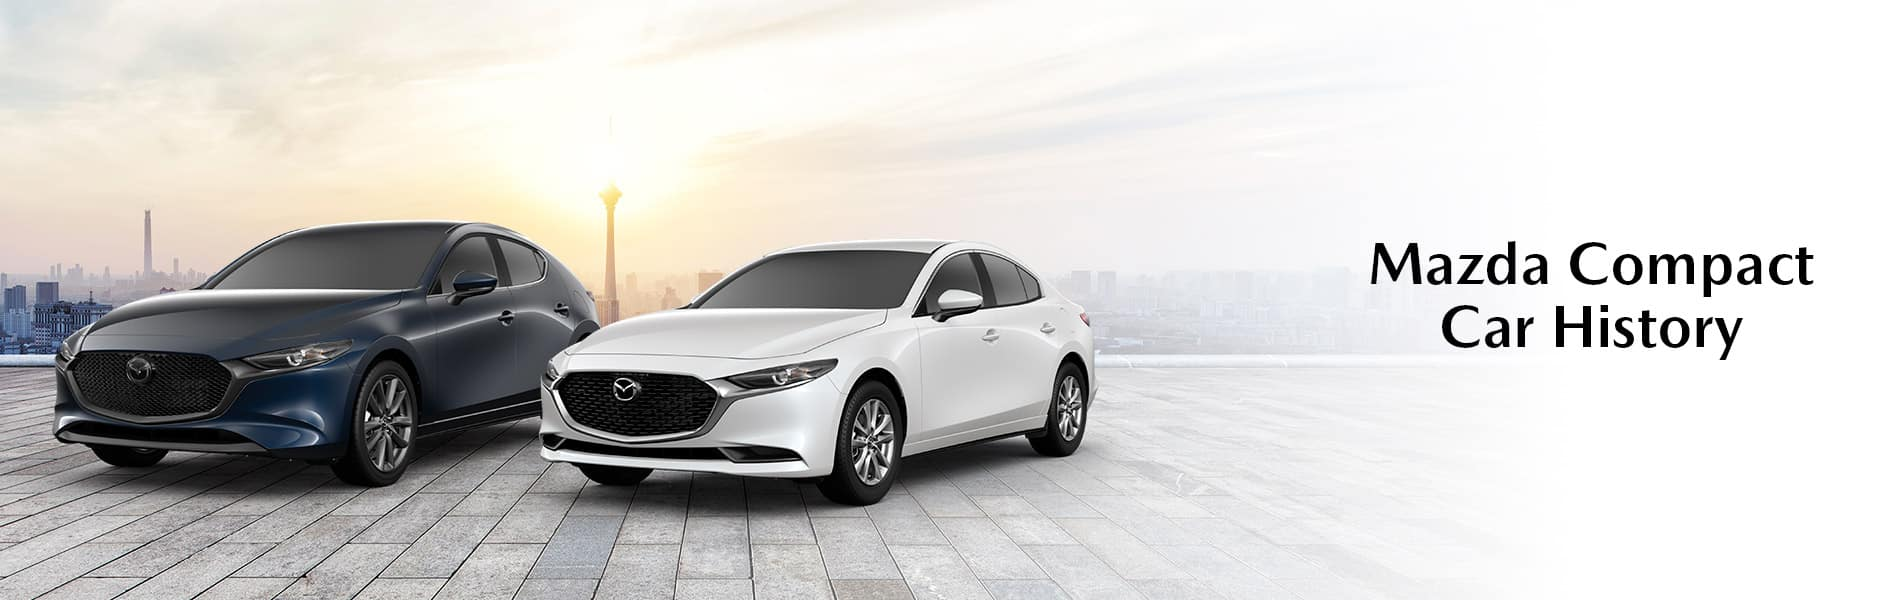 Mazda has a long history of great compact cars, and we have the latest at Mazda of Bedford